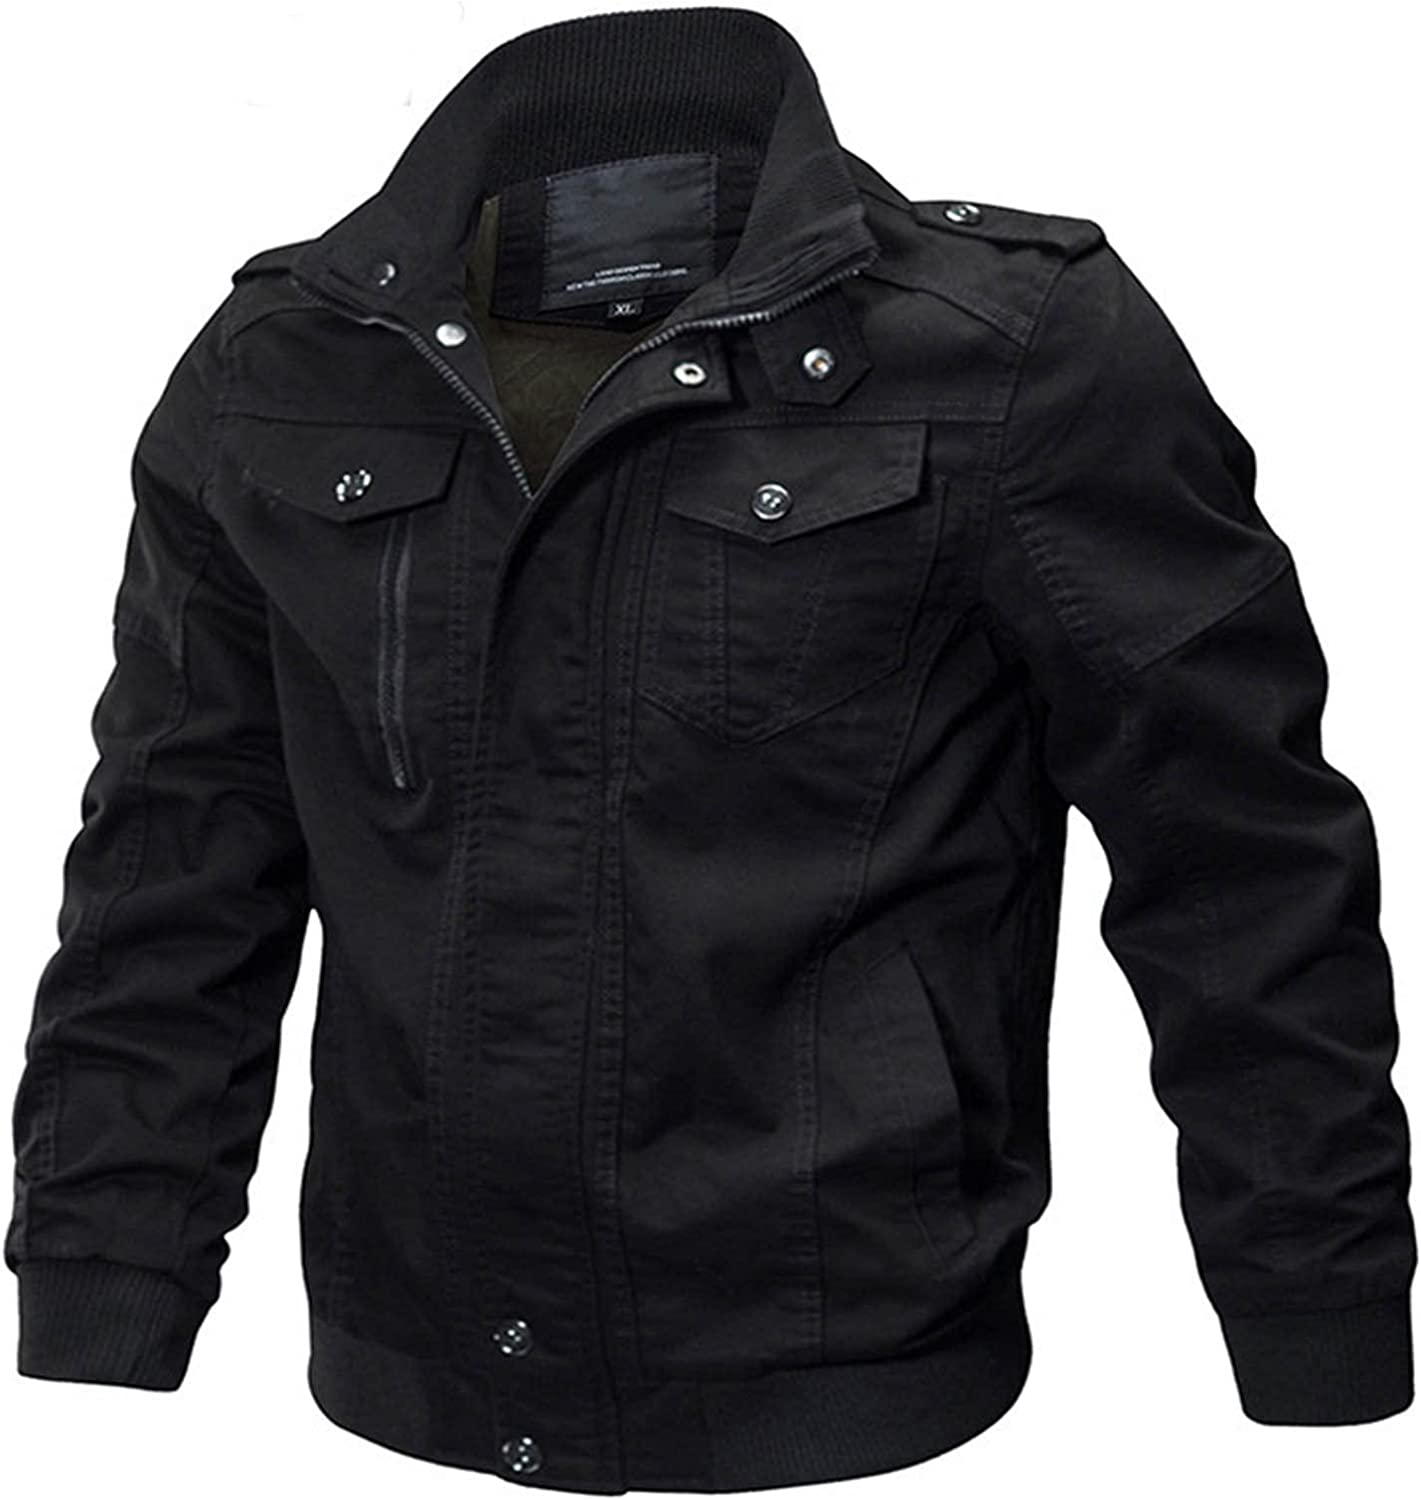 Men's Lightweight Military Jackets with Multi Pockets Zip Front Stand Collar Windbreaker Coat Winter Loose Workwear